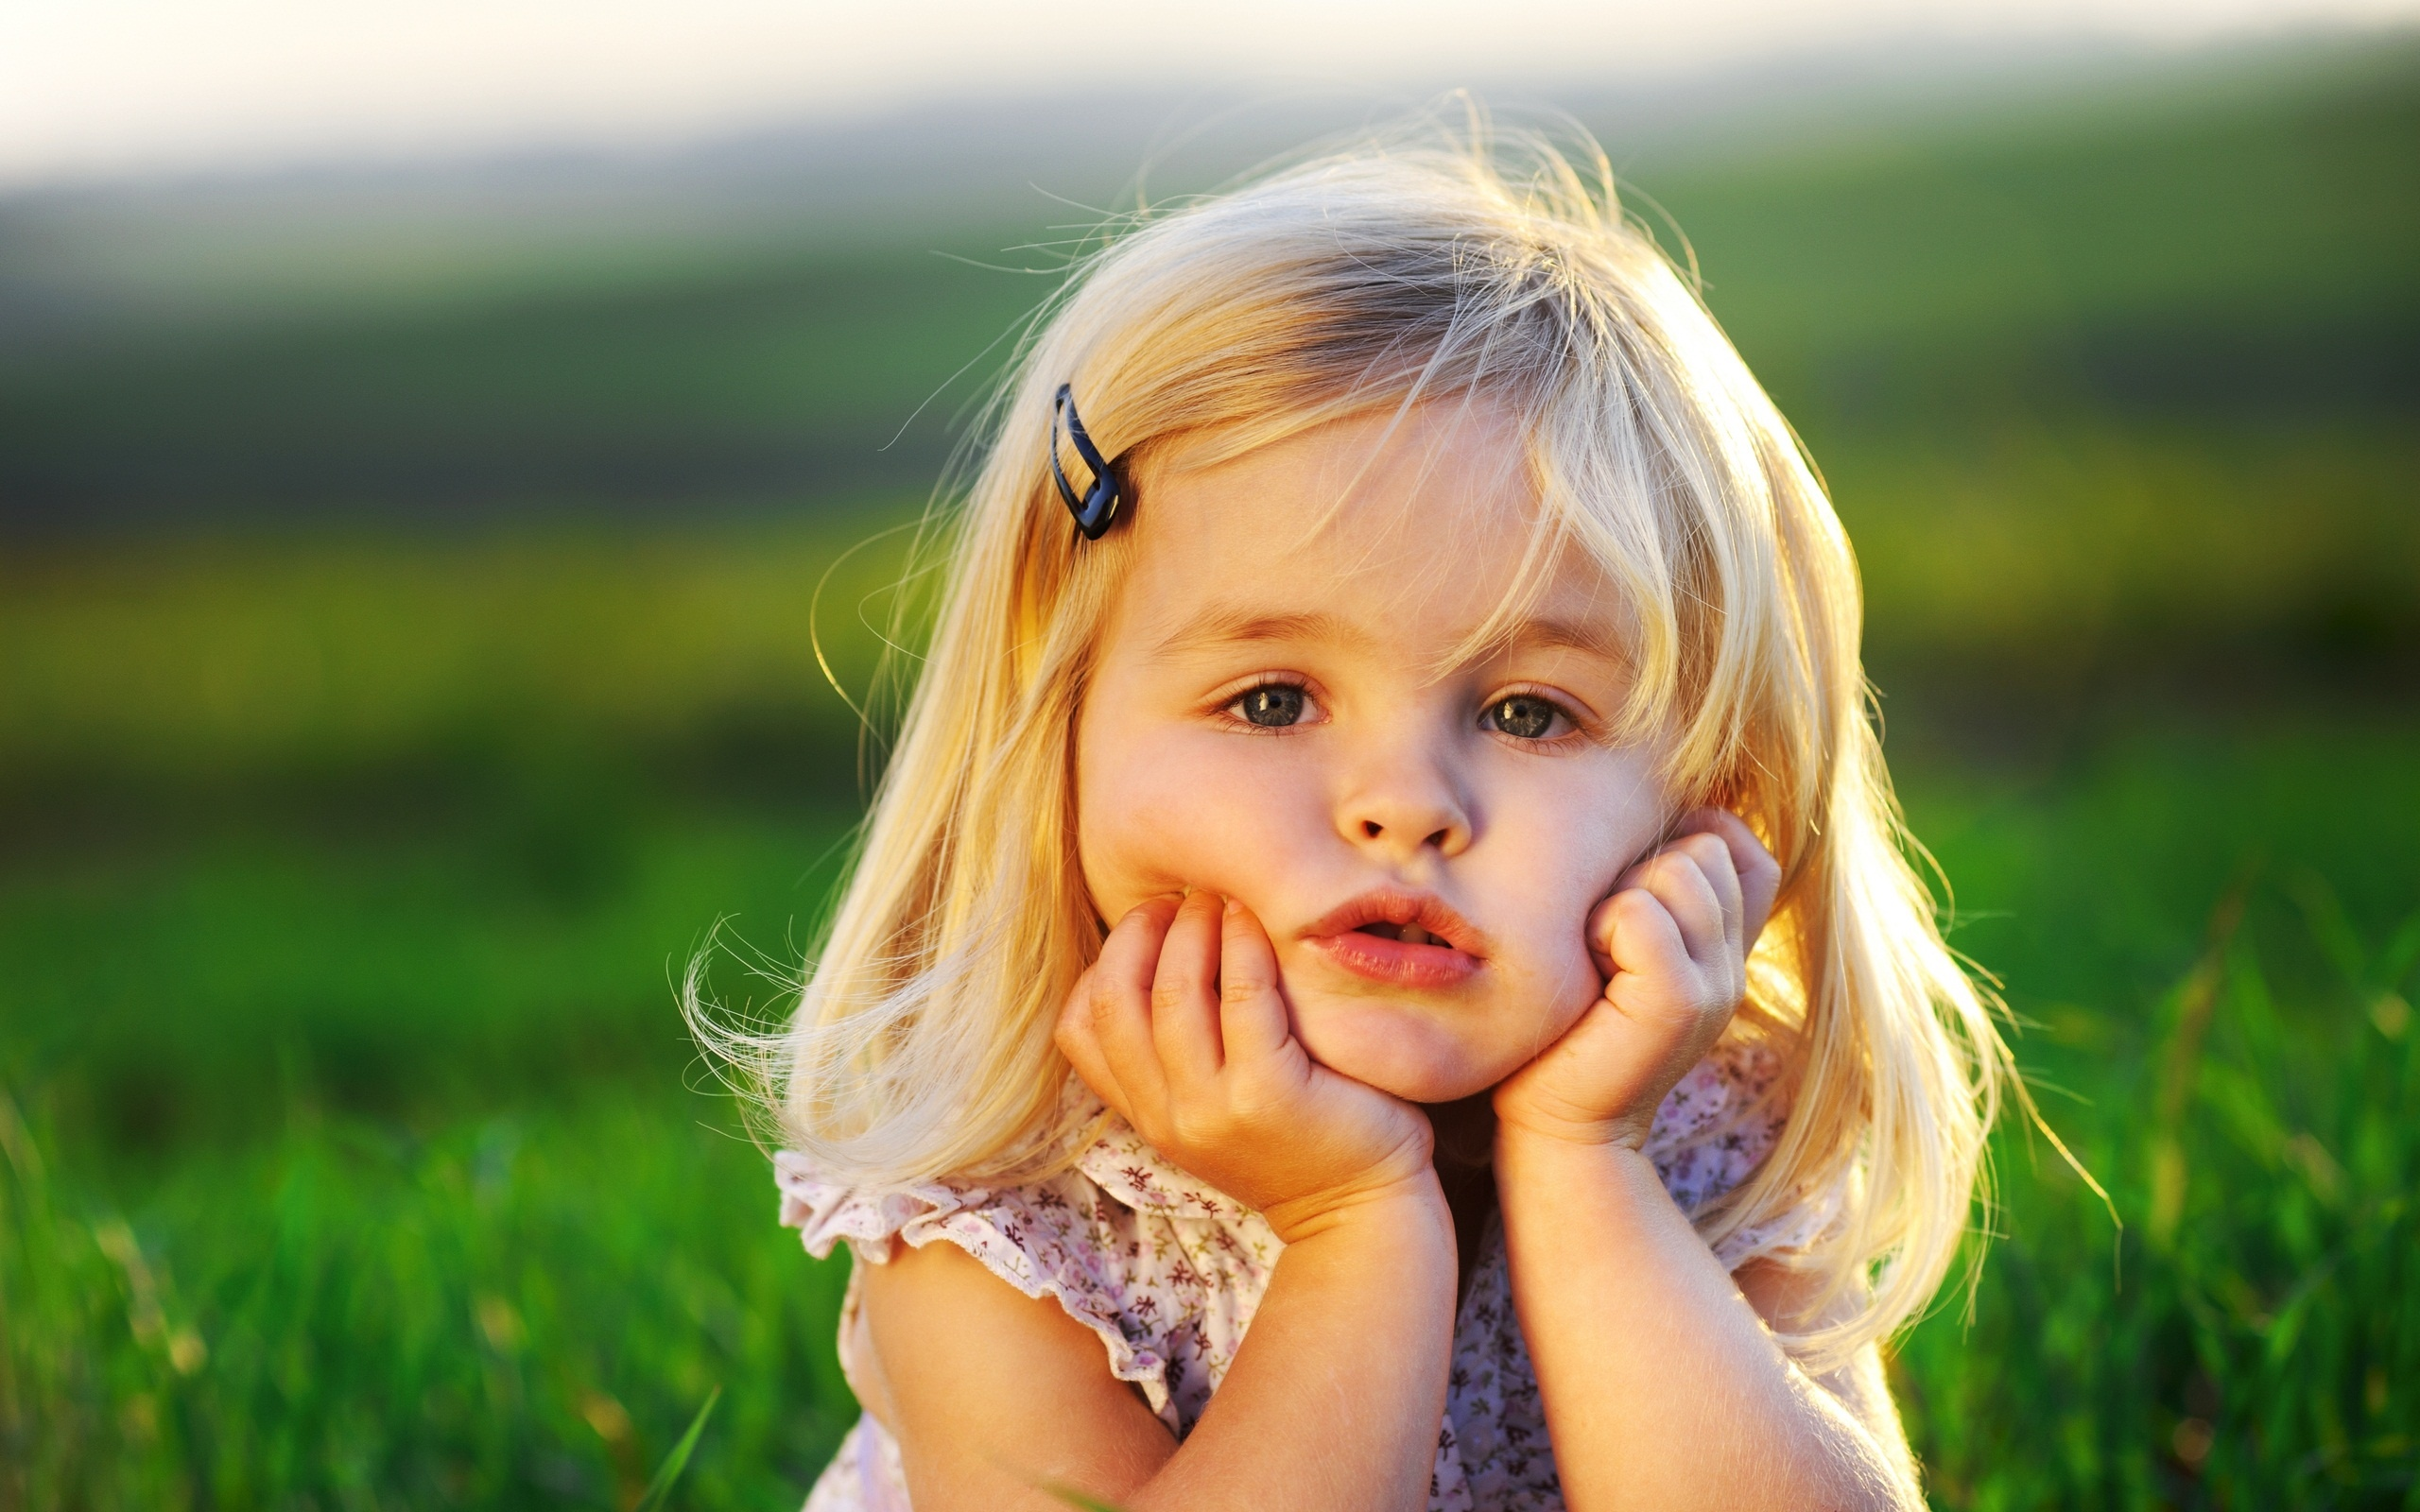 Cute Little Baby Girl Wallpapers HD Wallpapers 2560x1600